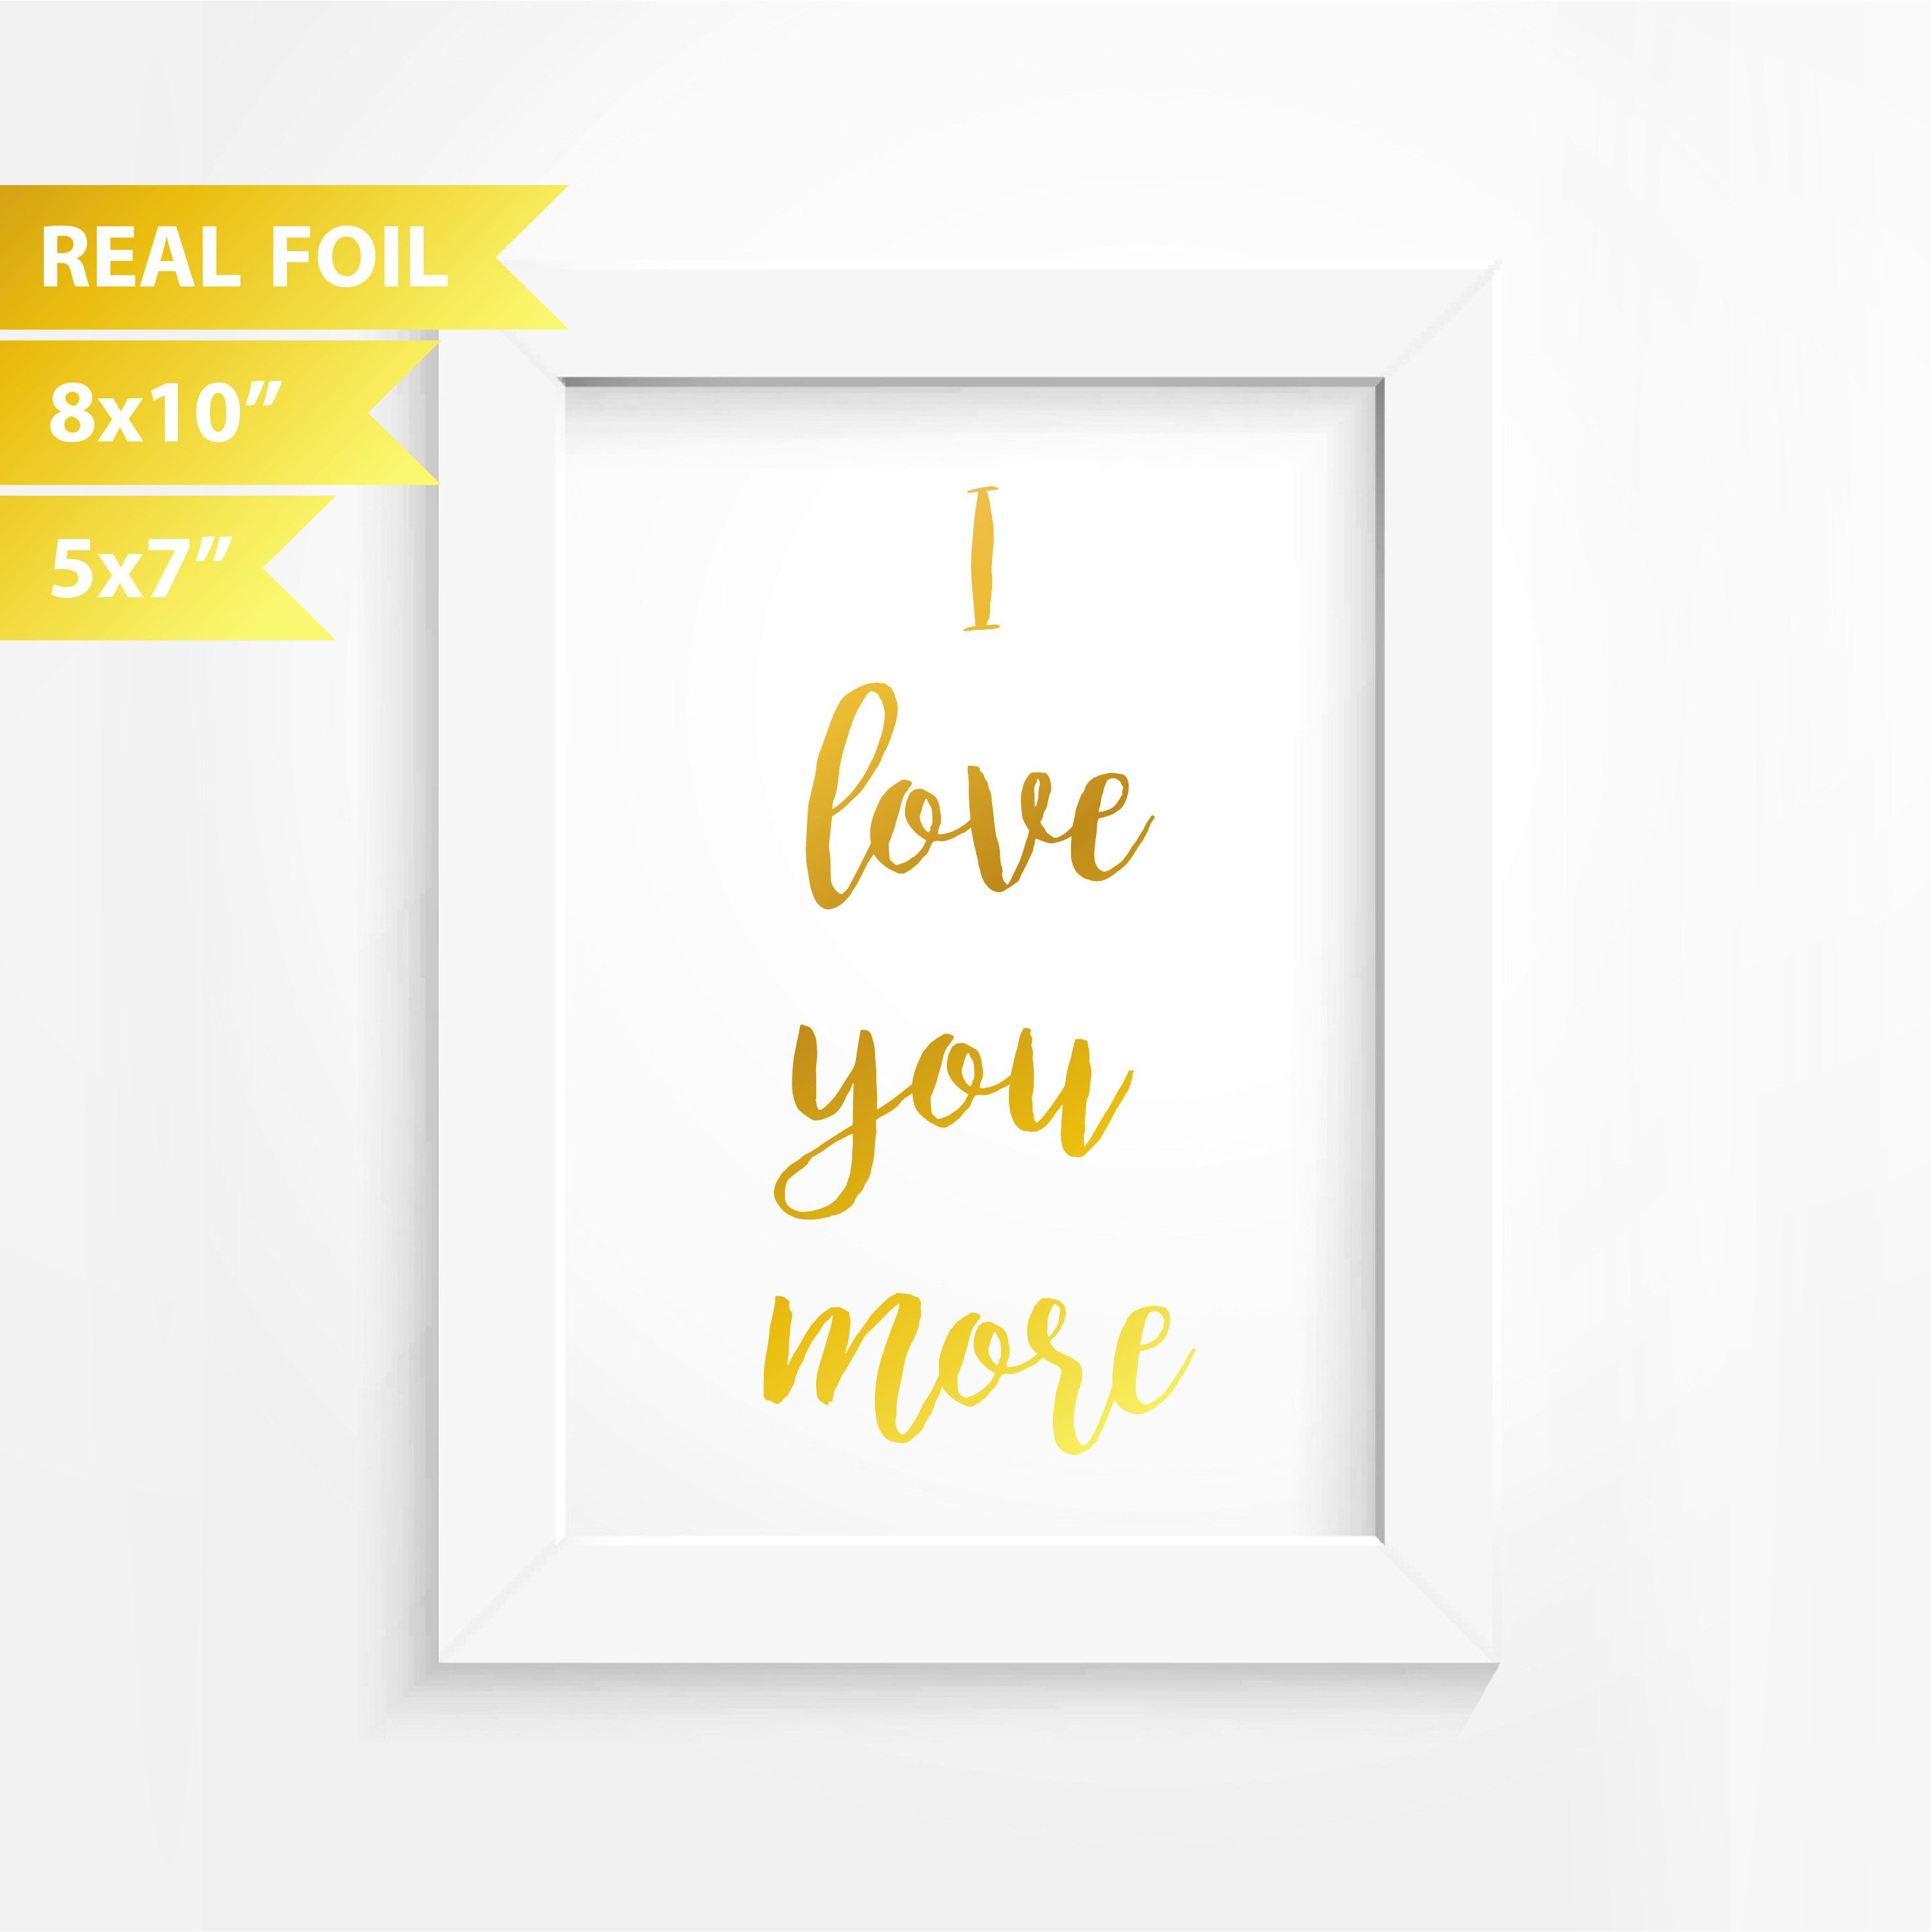 Rose Gold Wall Decor Real Foil Print Decor Love Gift Anniversary Present Gold Foil Art